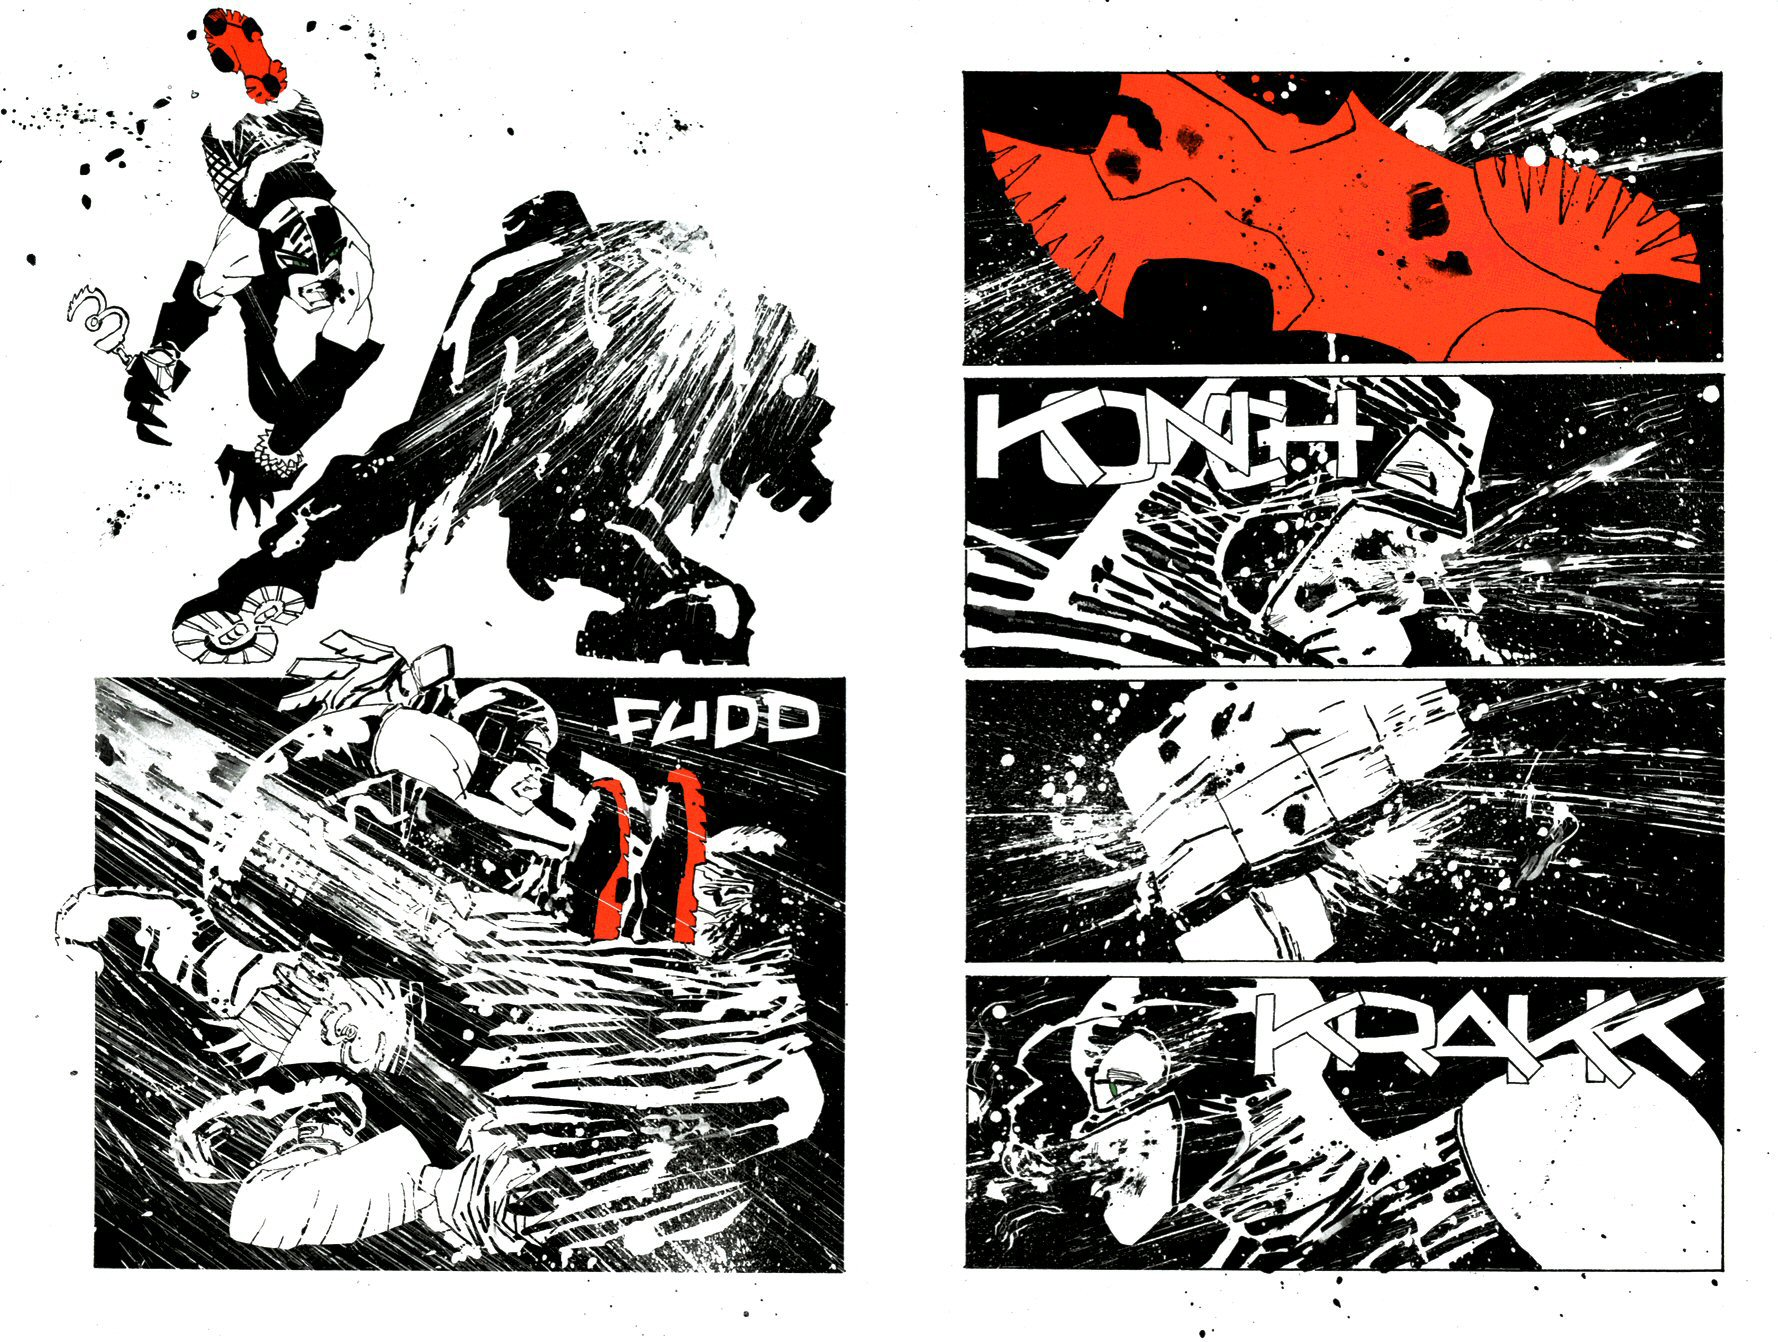 Read online Frank Miller's Holy Terror comic -  Issue # TPB - 24